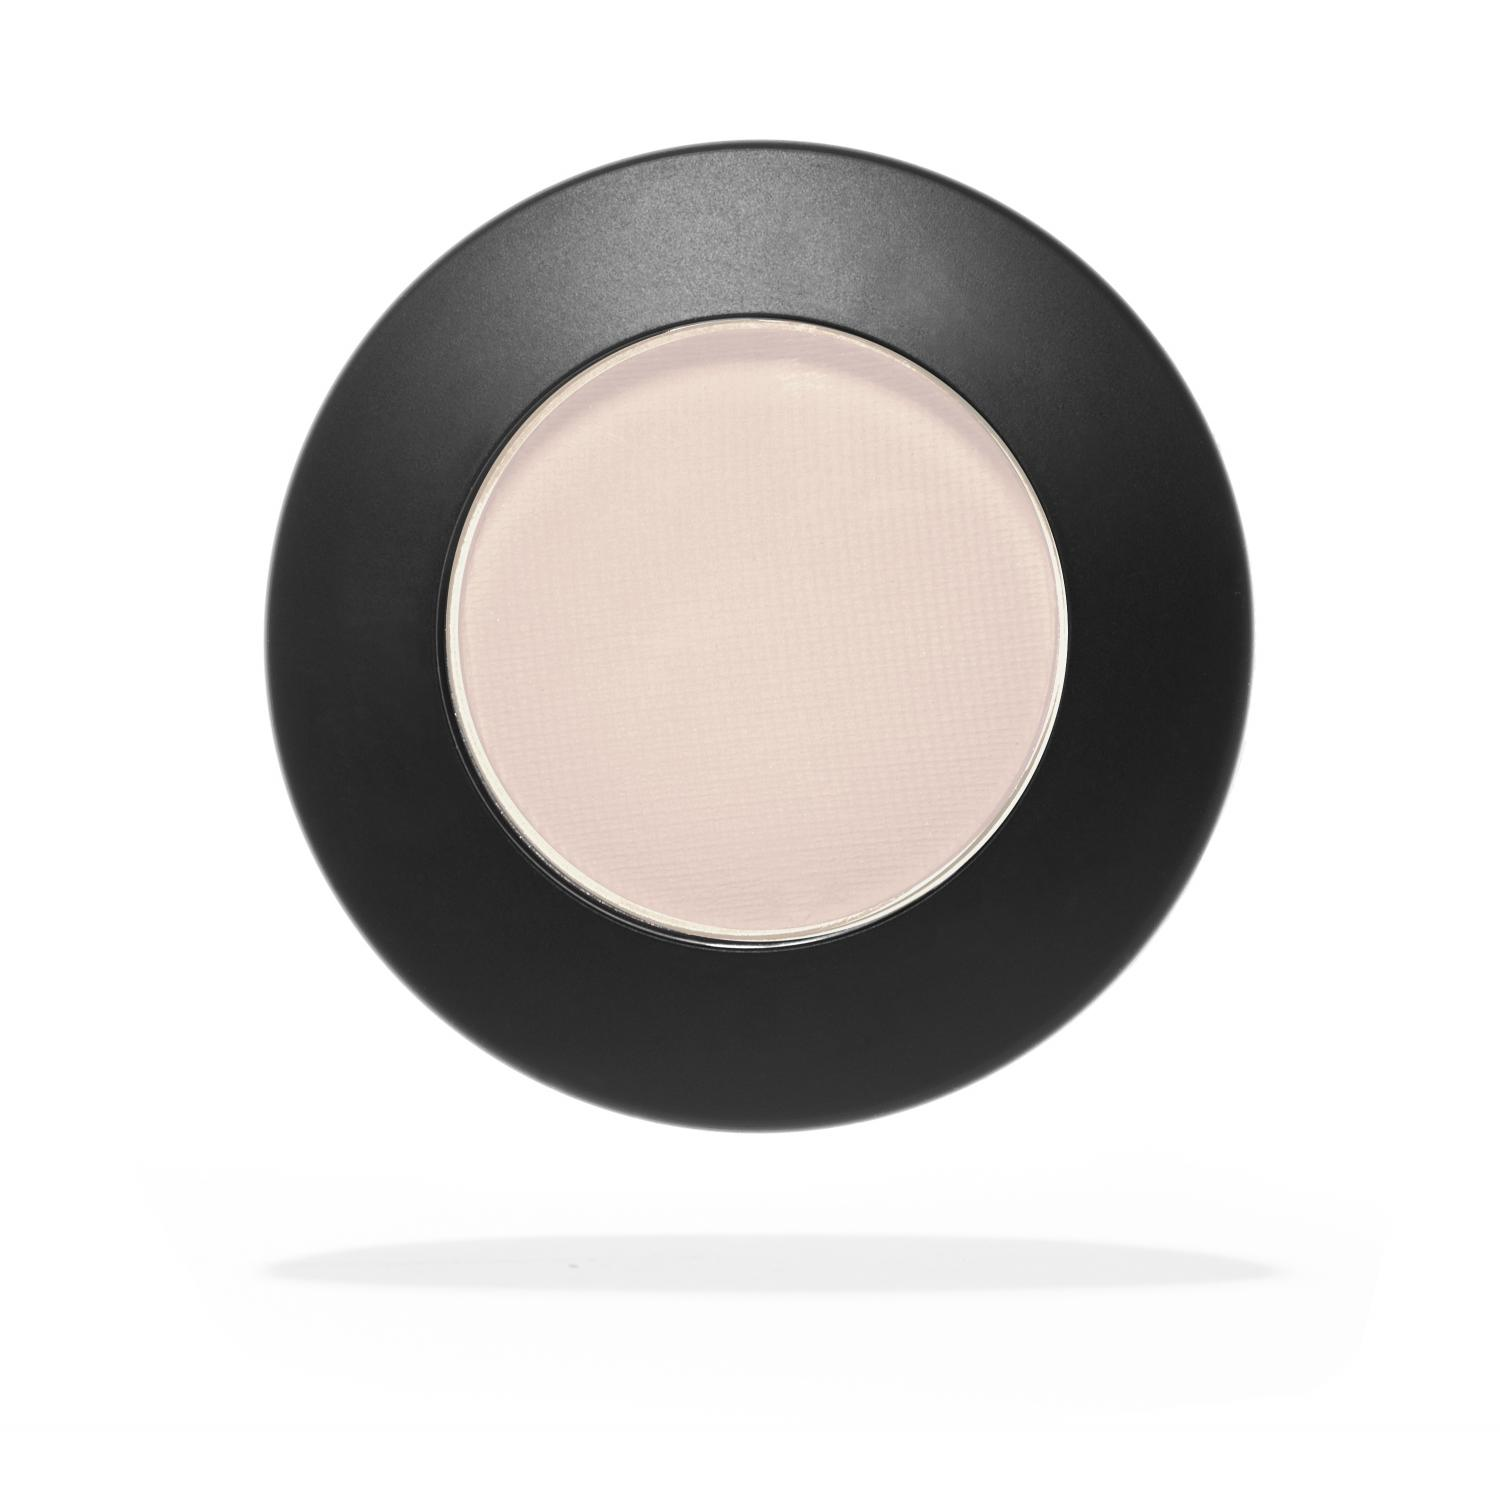 GYPS - MICRONIZED EYE SHADOW